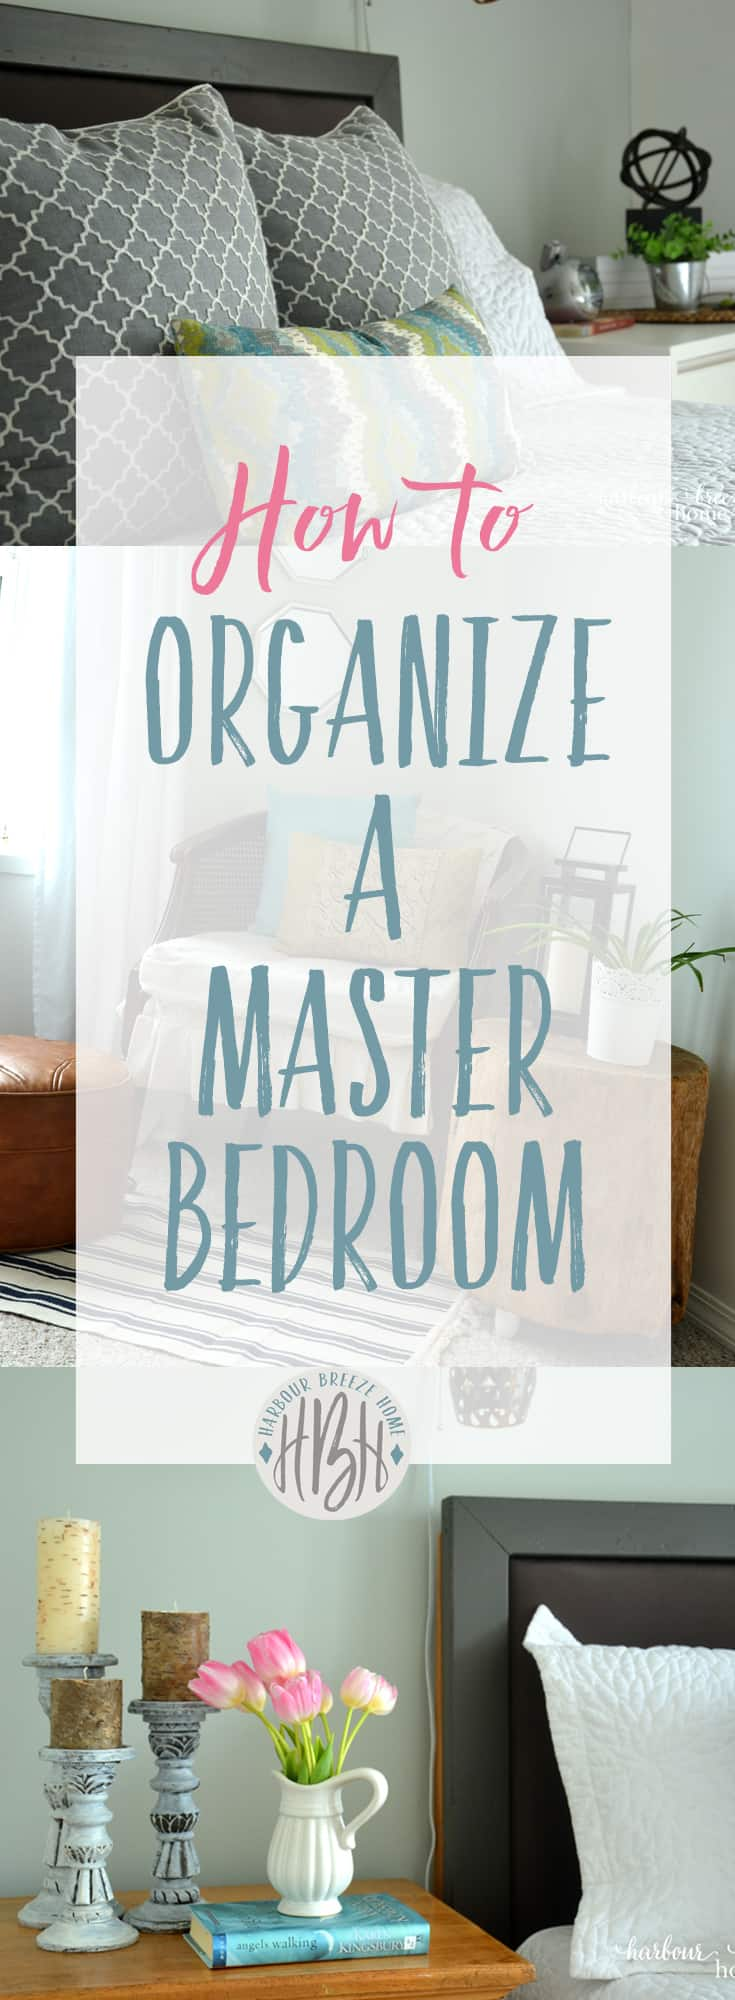 How to Organize the Master Bedroom